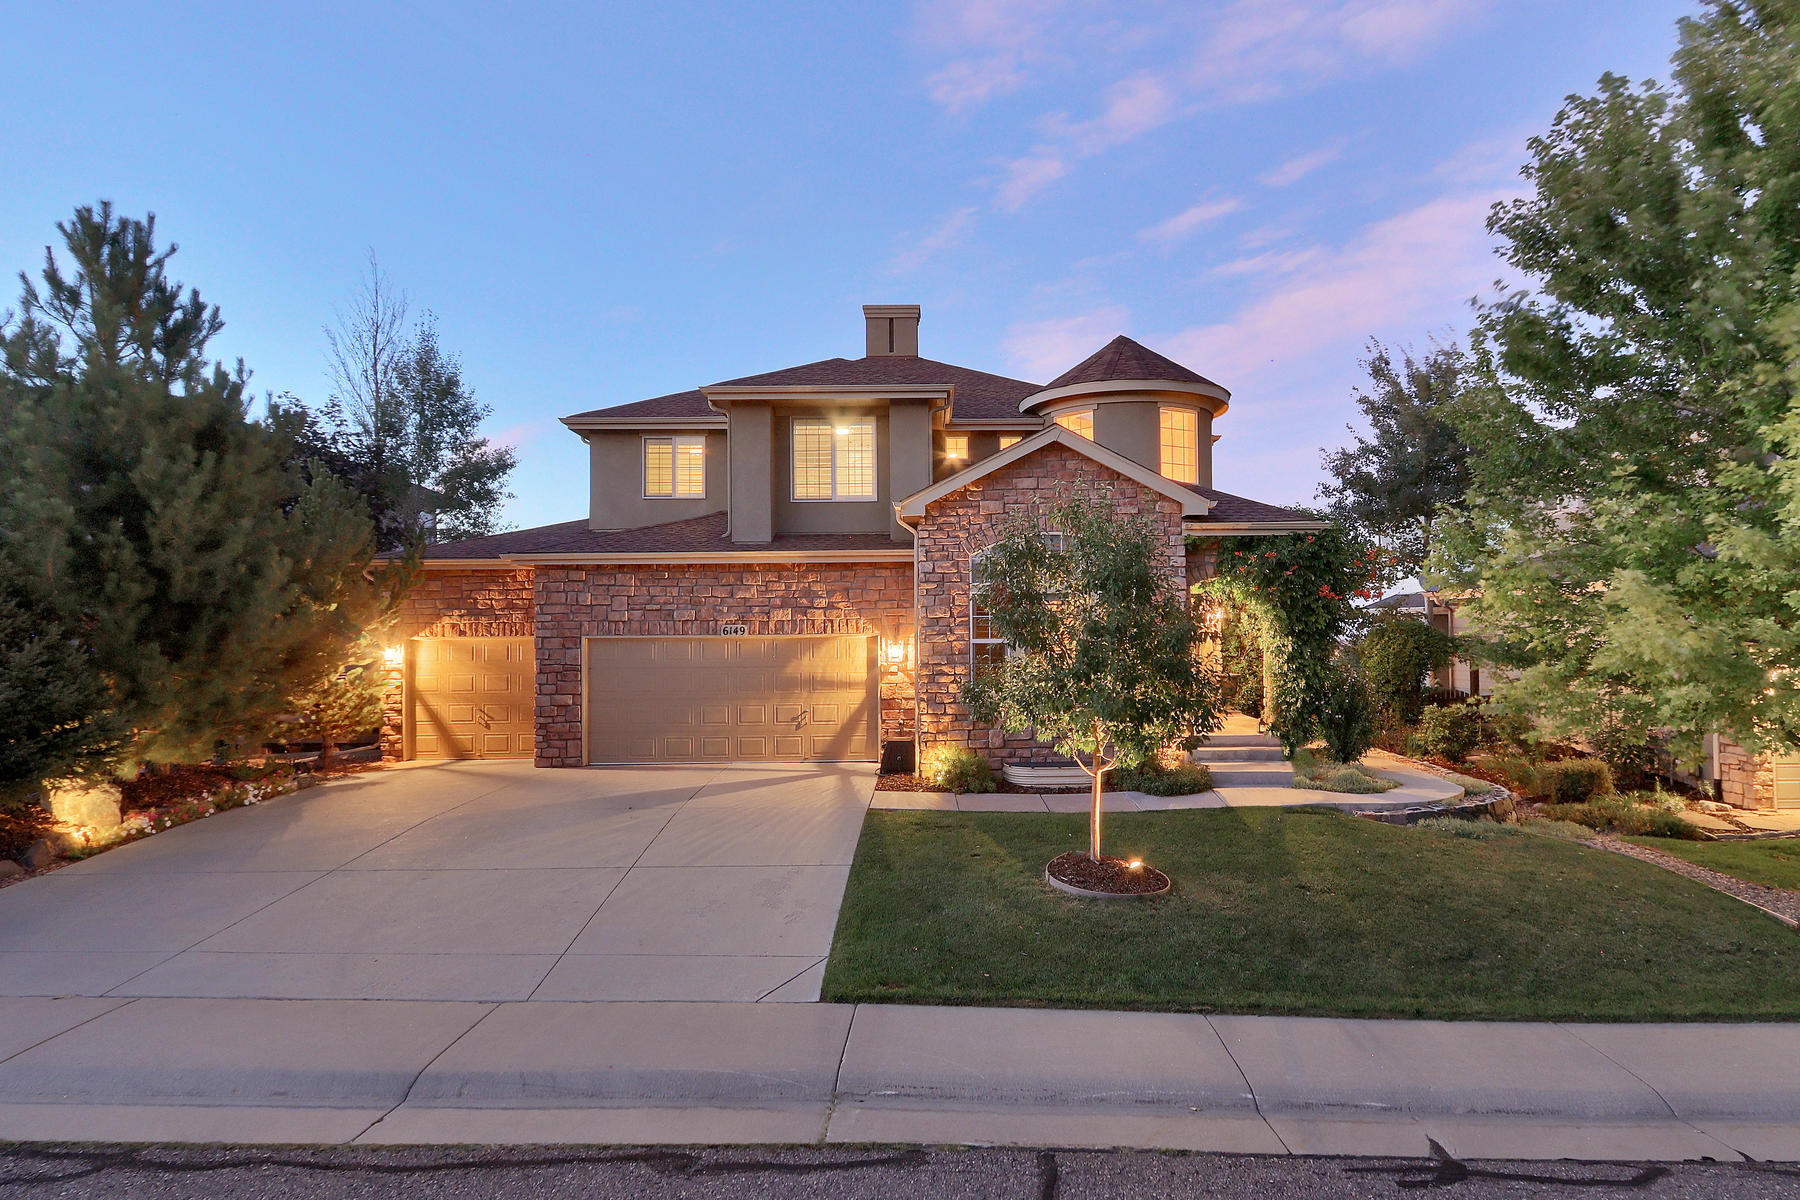 Single Family Homes for Active at If outdoor living is your dream, then this home is for you. 6149 Vacquero Cir Castle Pines, Colorado 80108 United States